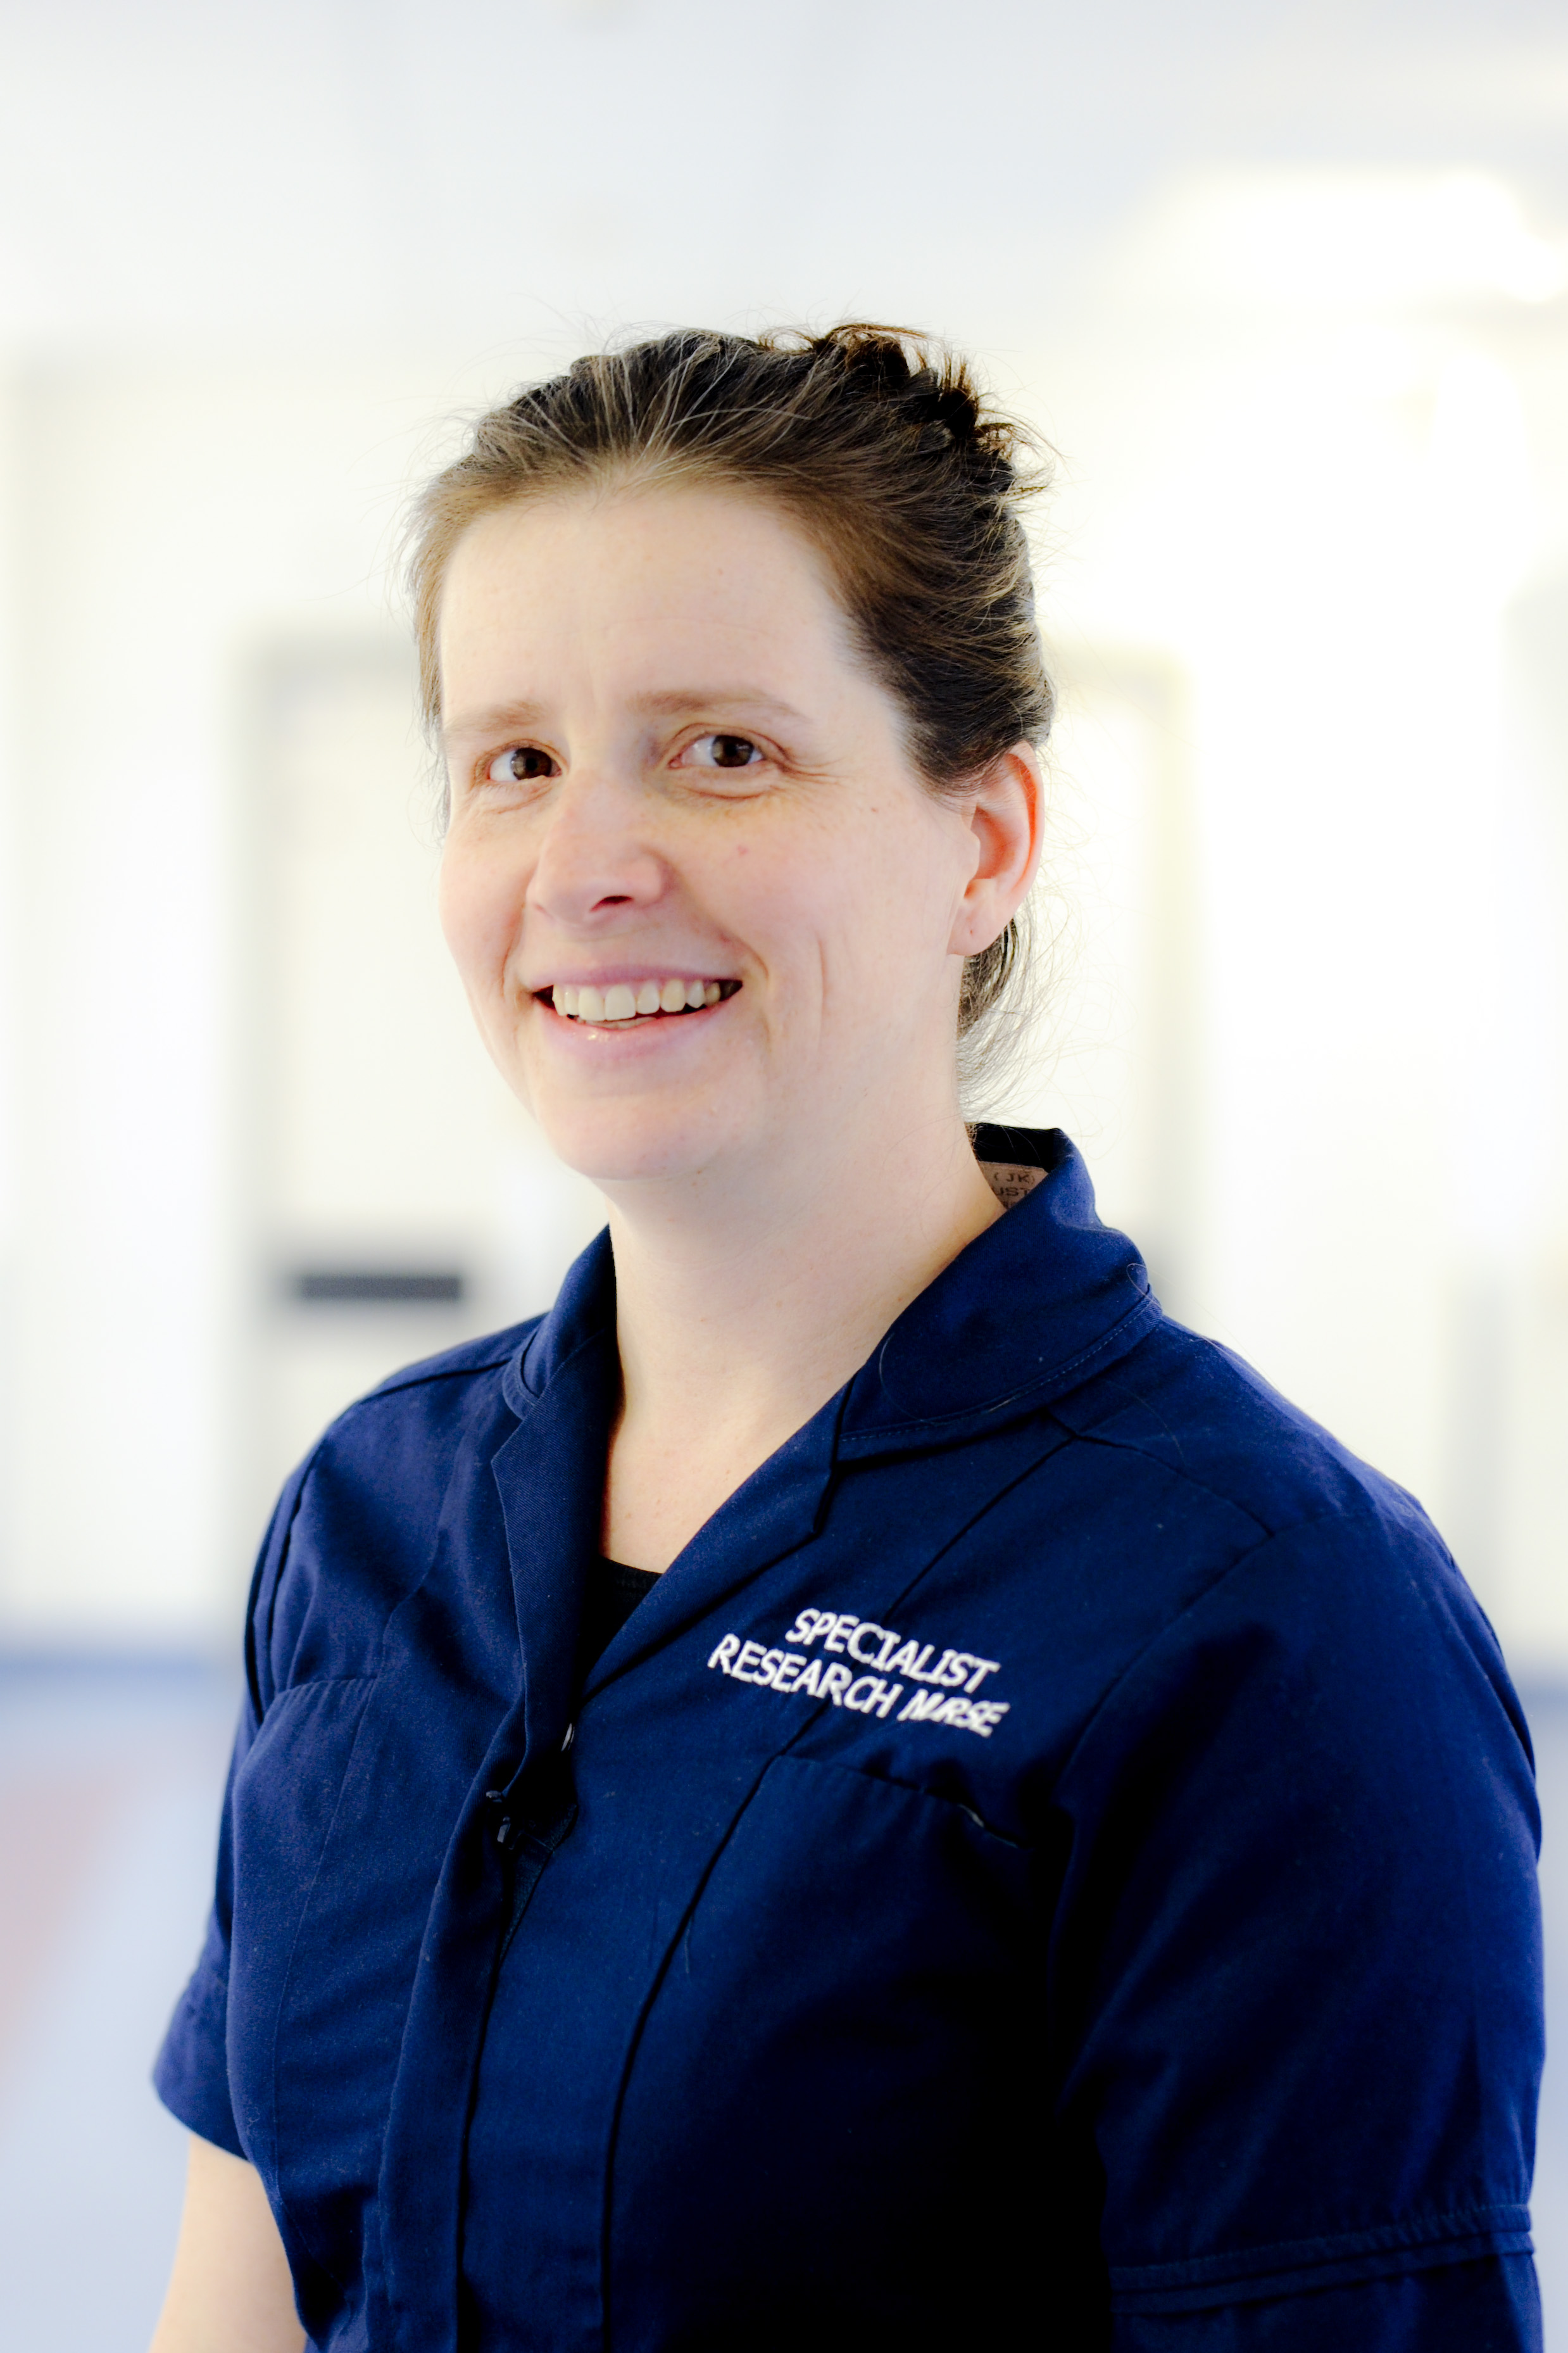 Research Nurse Rosalynn Austin talks about her role for International Year of the Nurse and Midwife